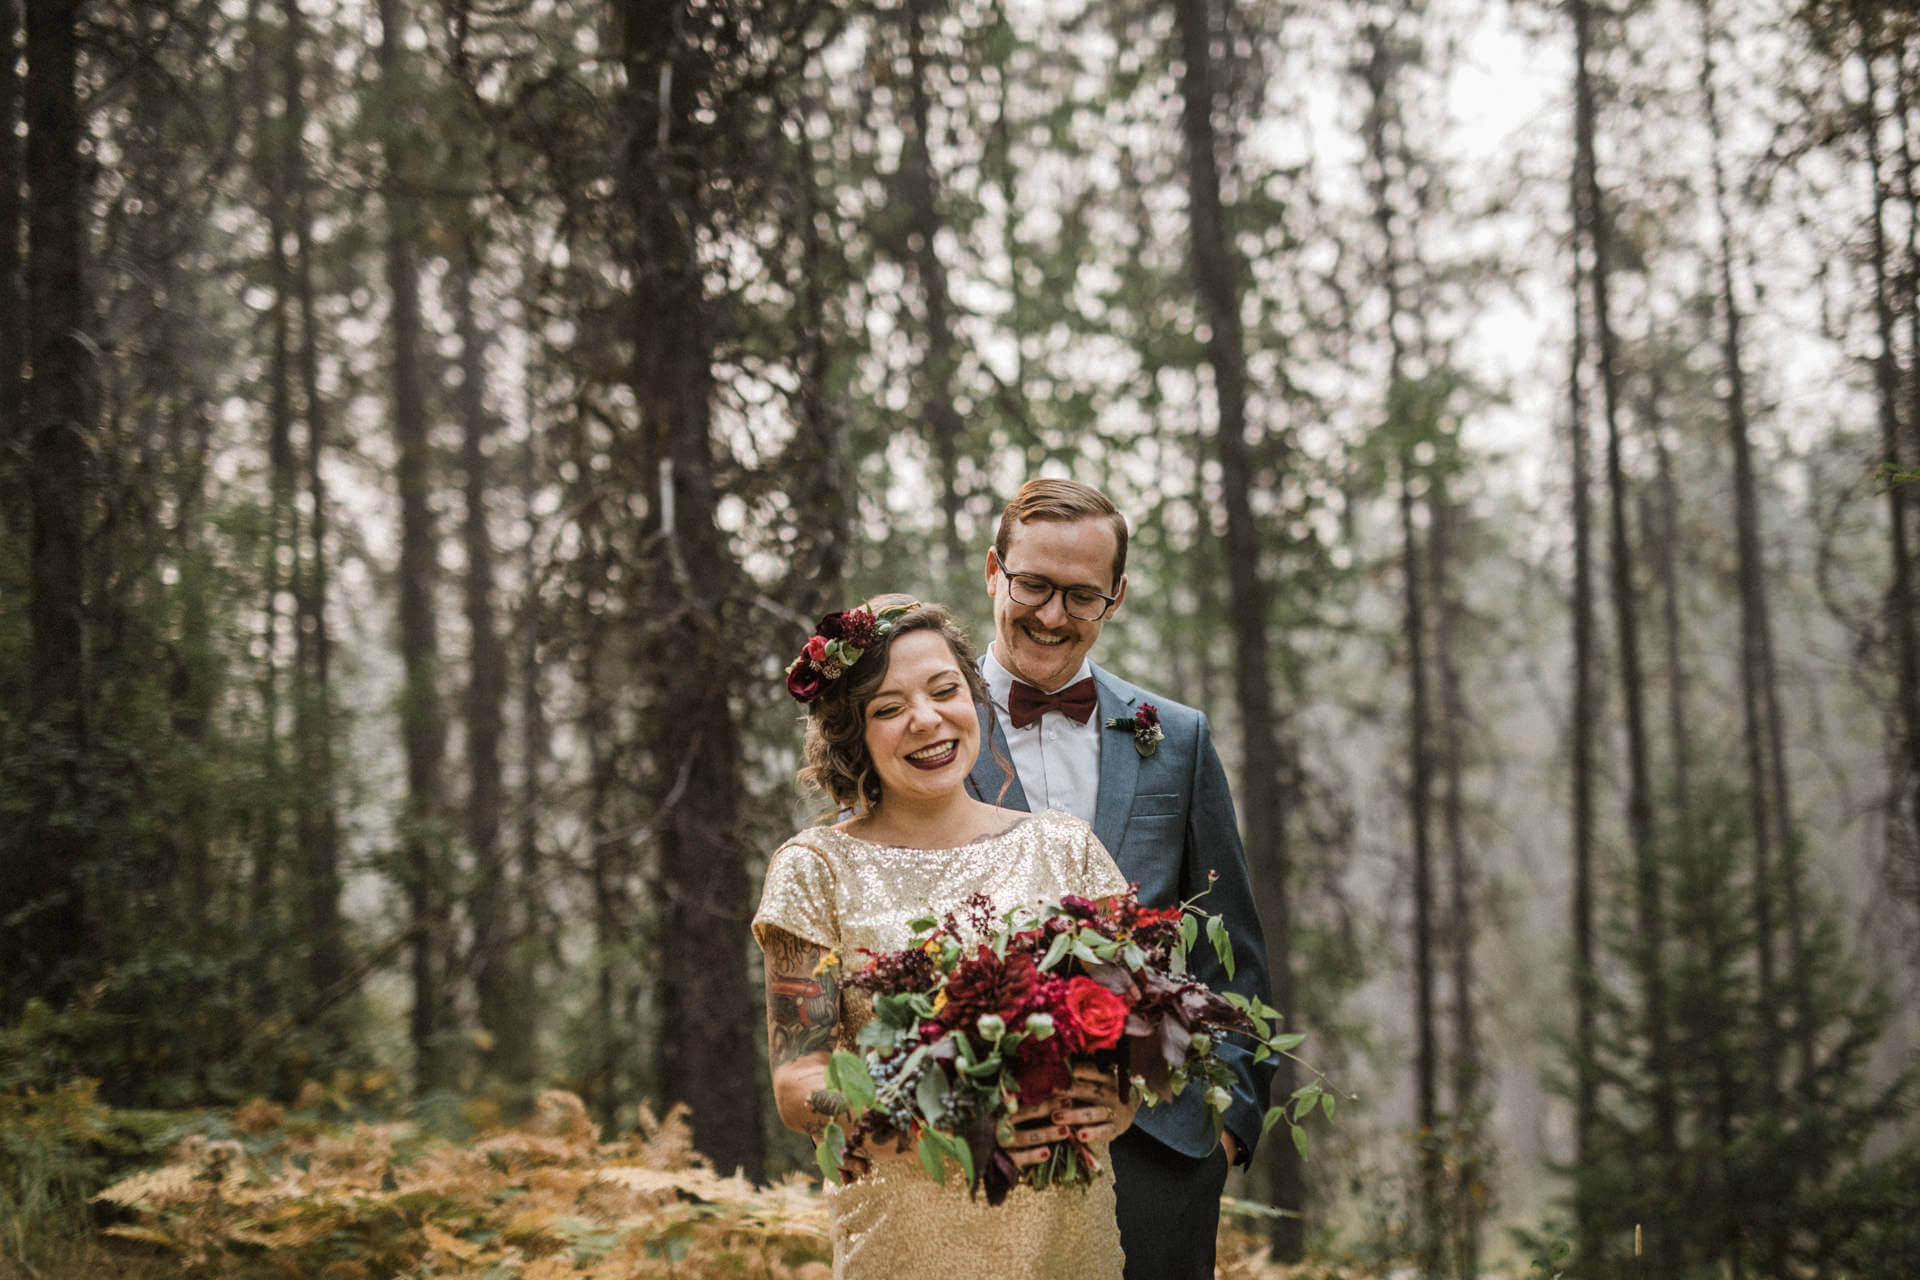 Des Moines Elopement Photographers | Cluney Photography